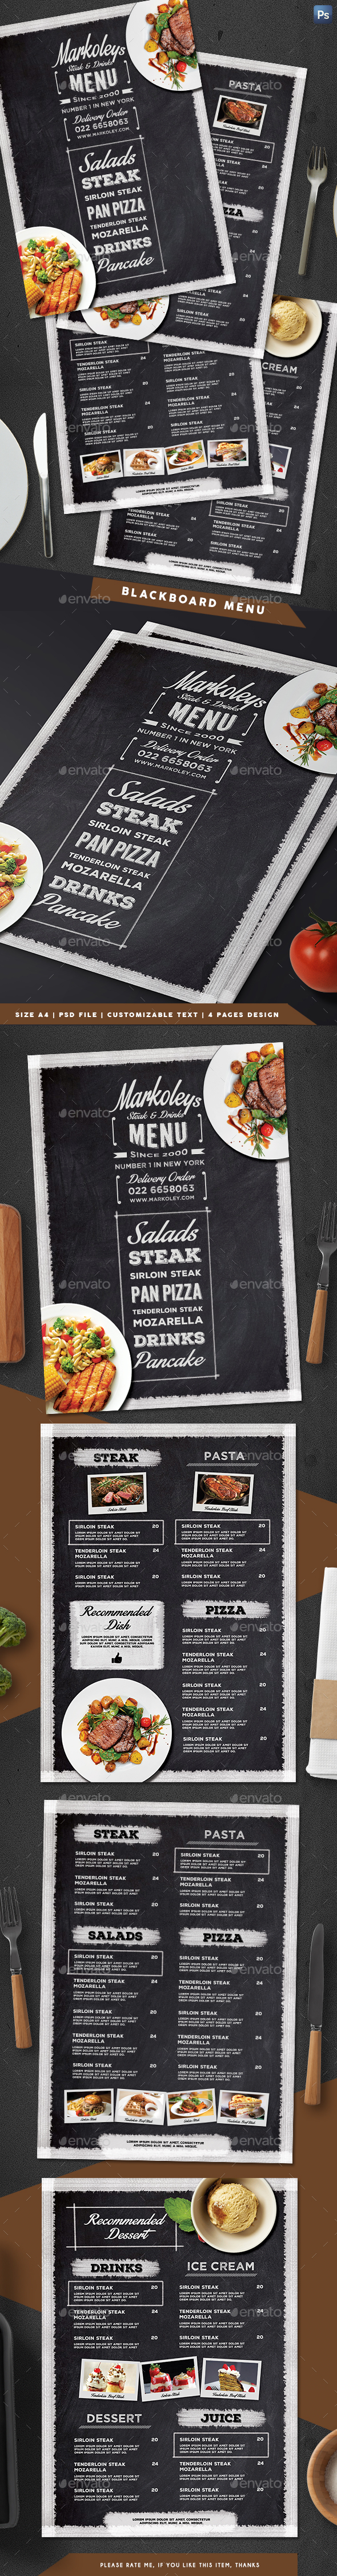 Typography Blackboard Menu - Food Menus Print Templates